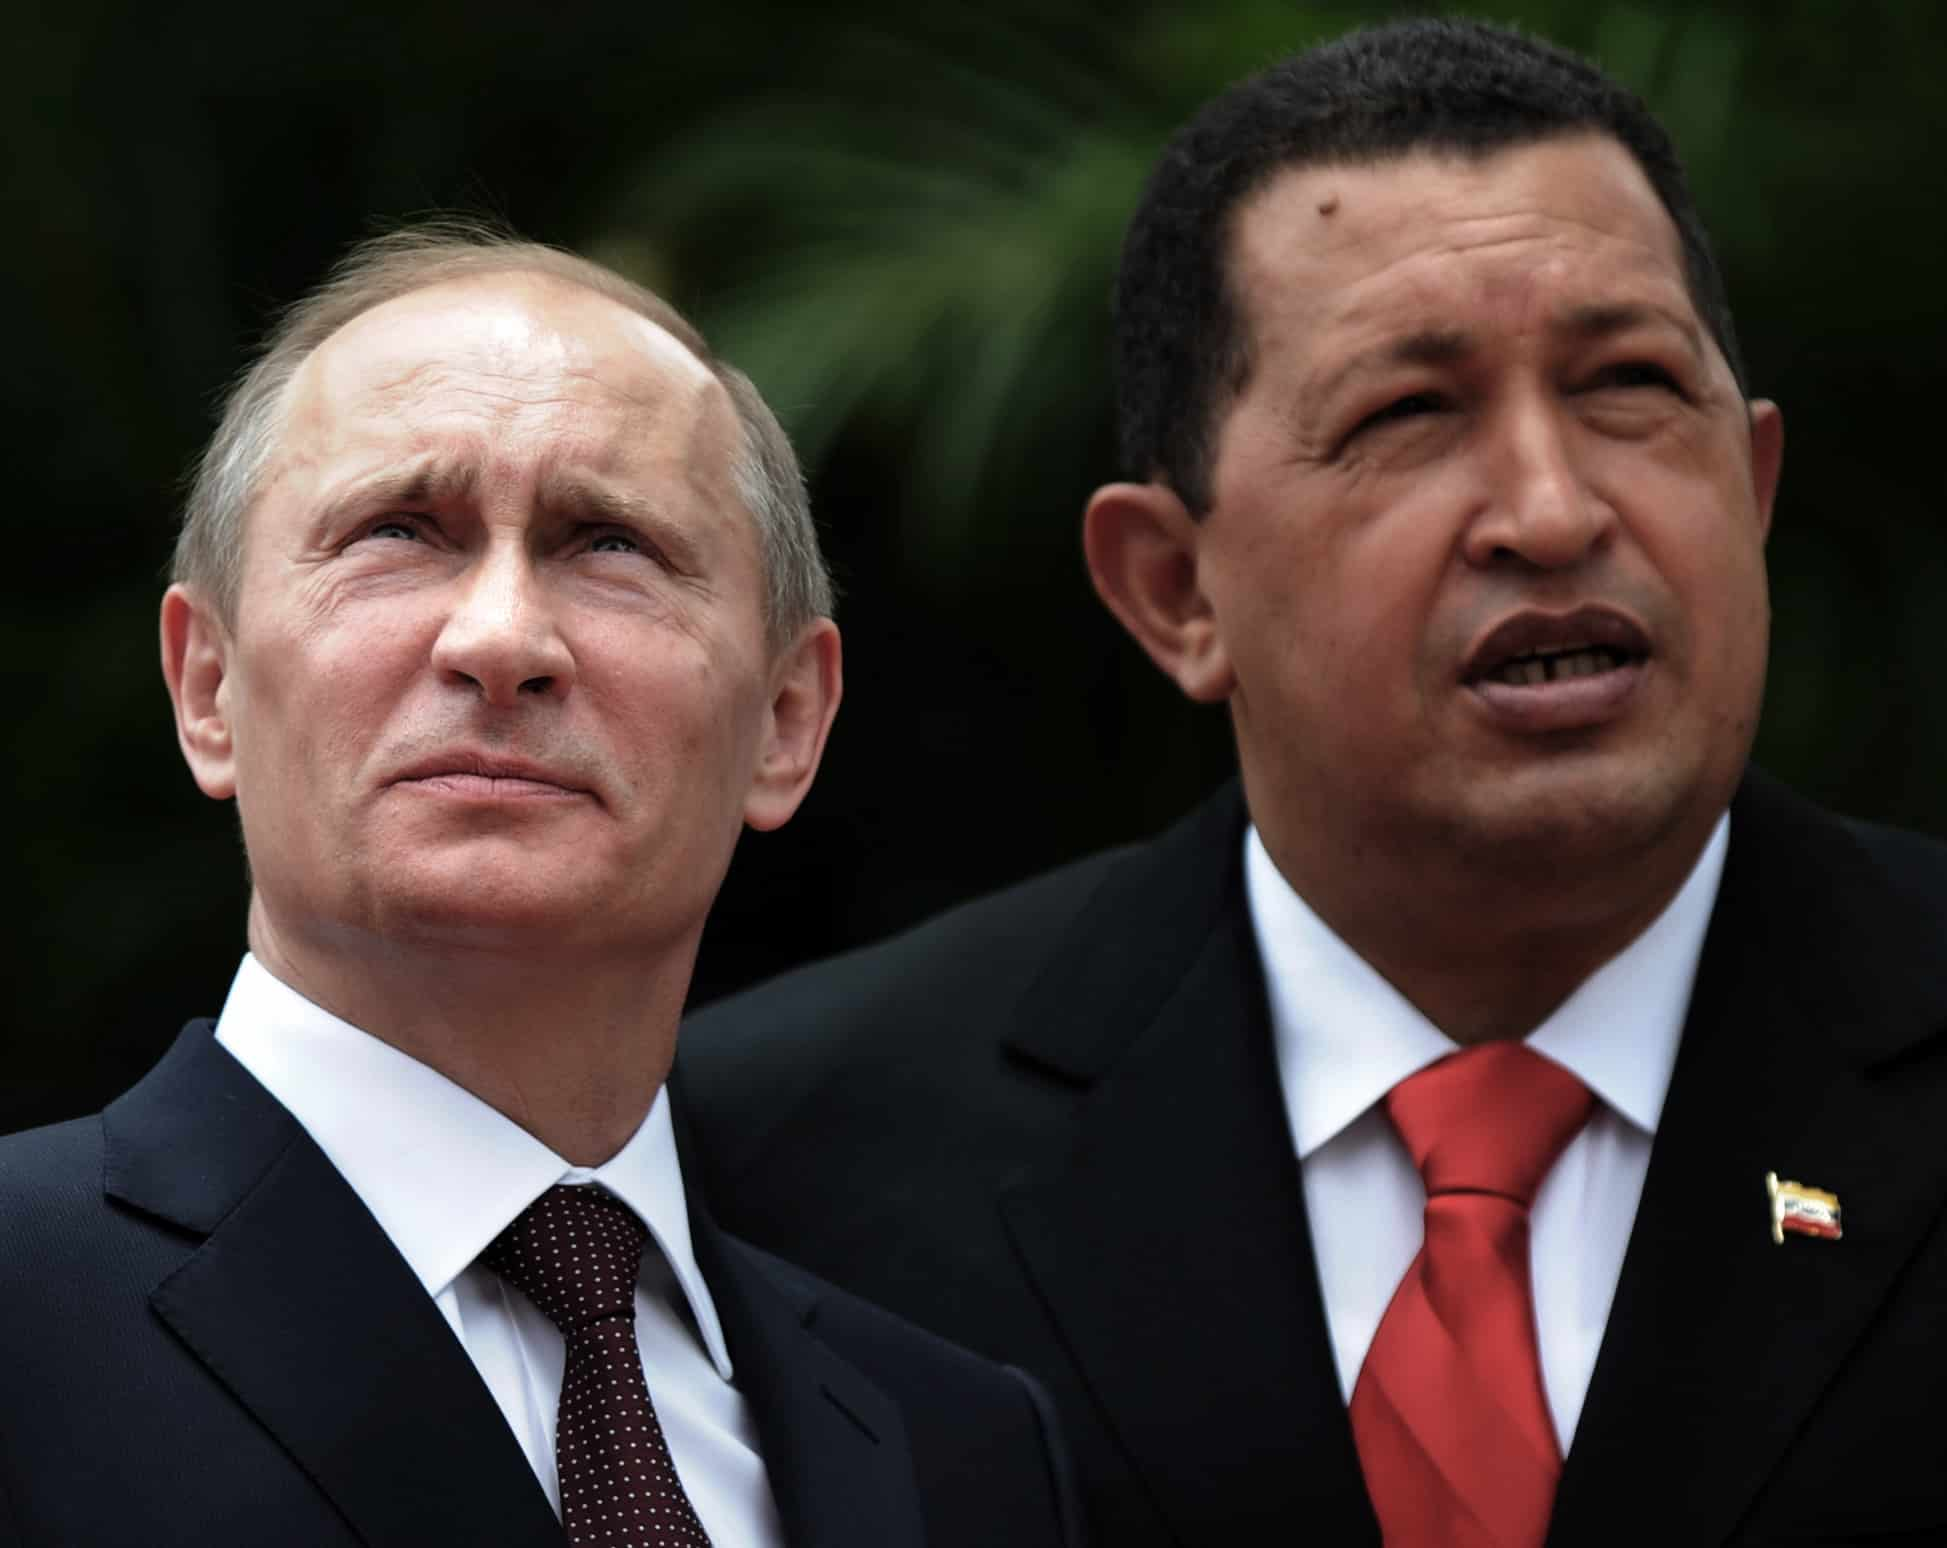 Venezuela's late President Hugo Chávez, right, speaks with Russian Prime Minister Vladimir Putin.